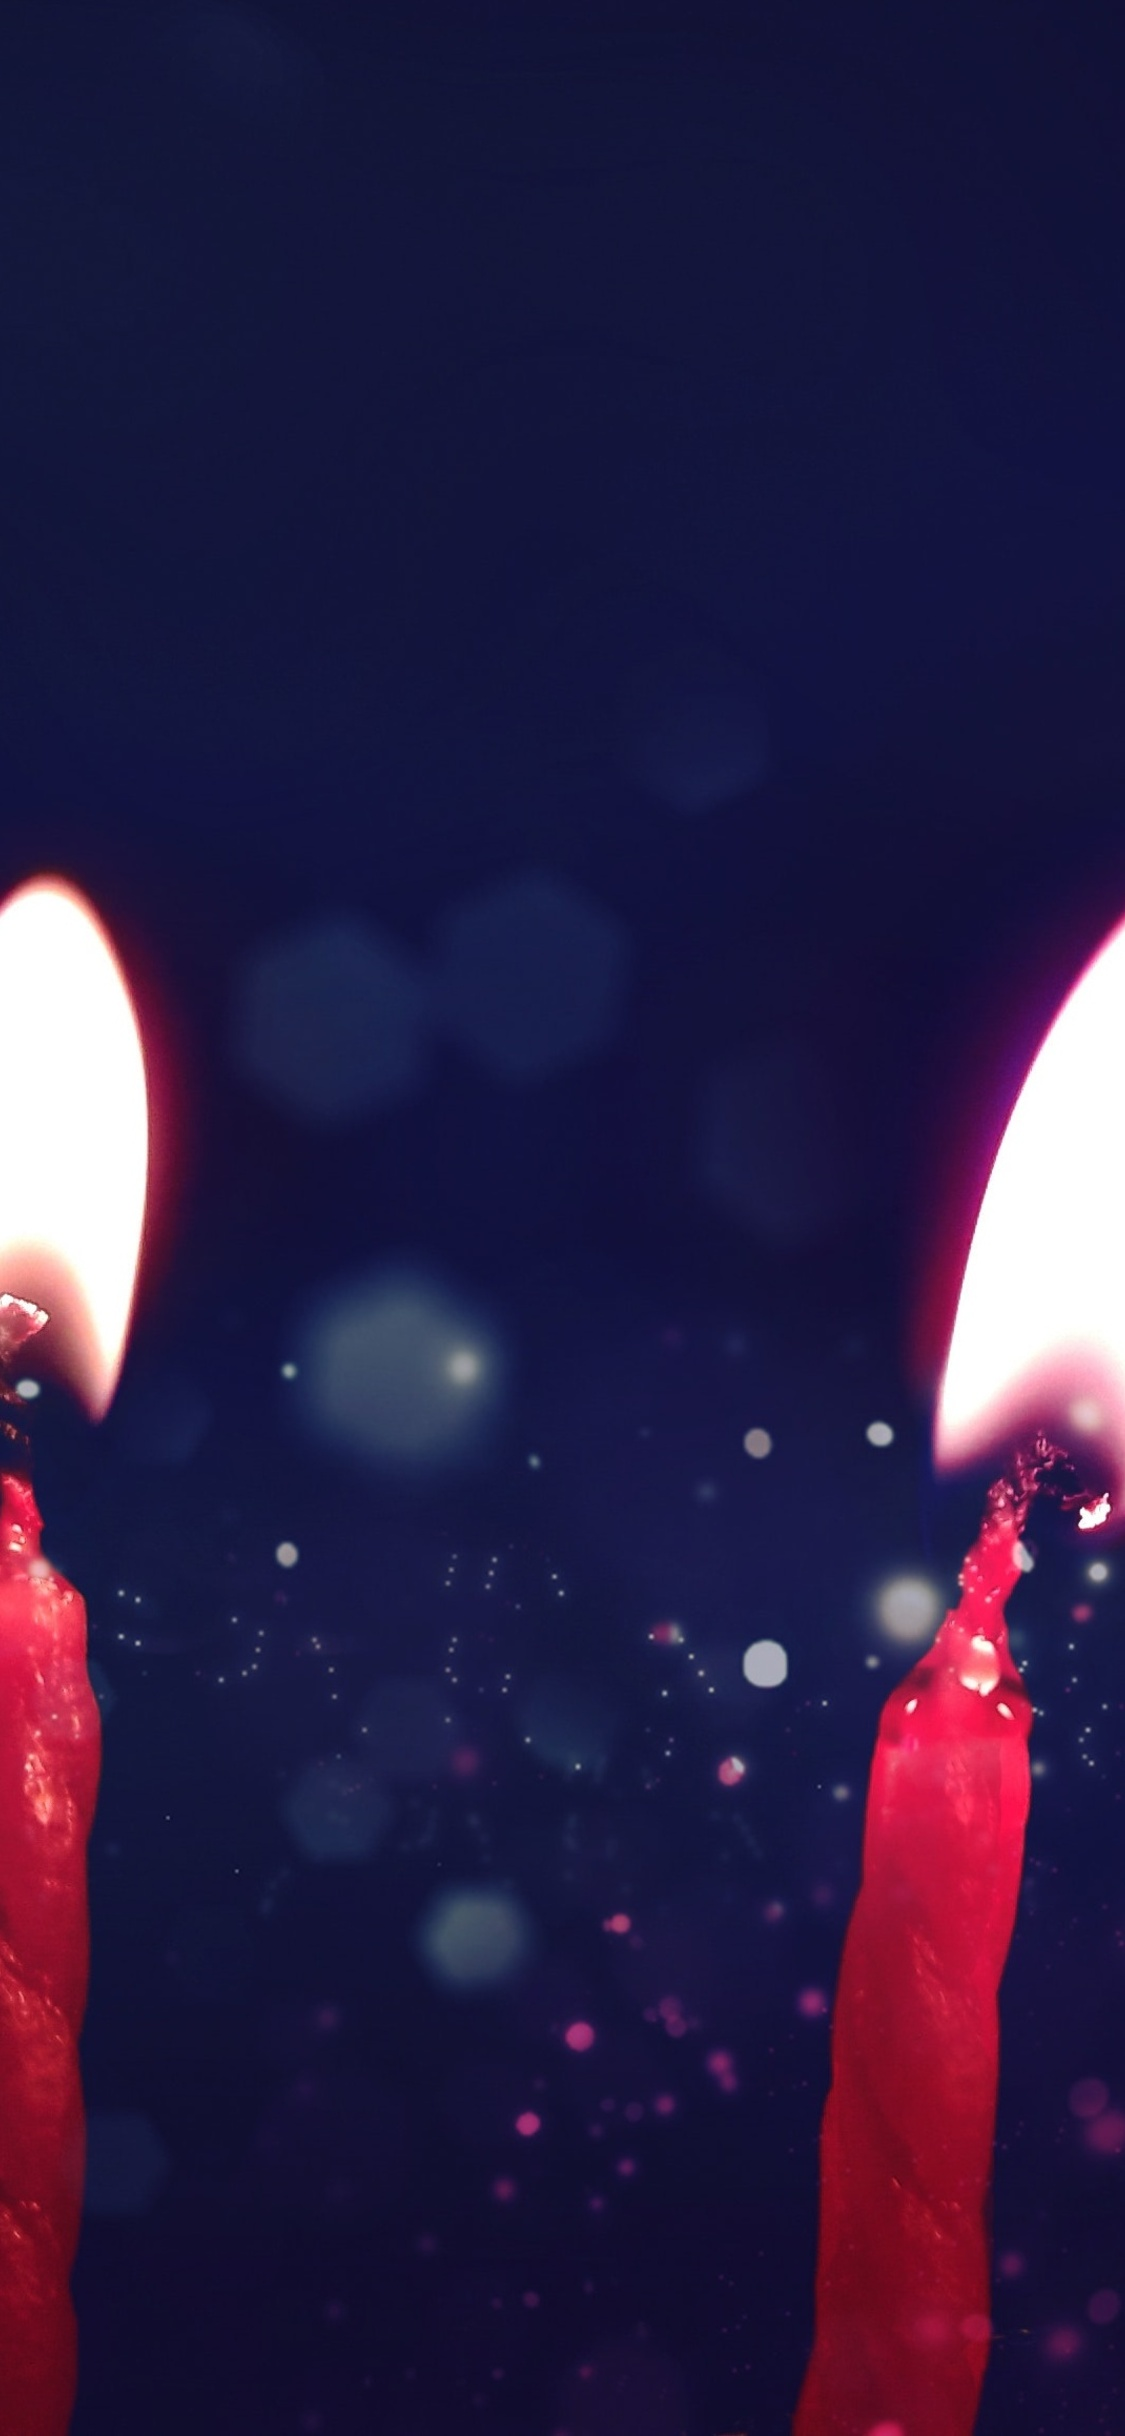 1125x2436 Birthday Candle Lights 4k Iphone Xs Iphone 10 Iphone X Hd 4k Wallpapers Images Backgrounds Photos And Pictures